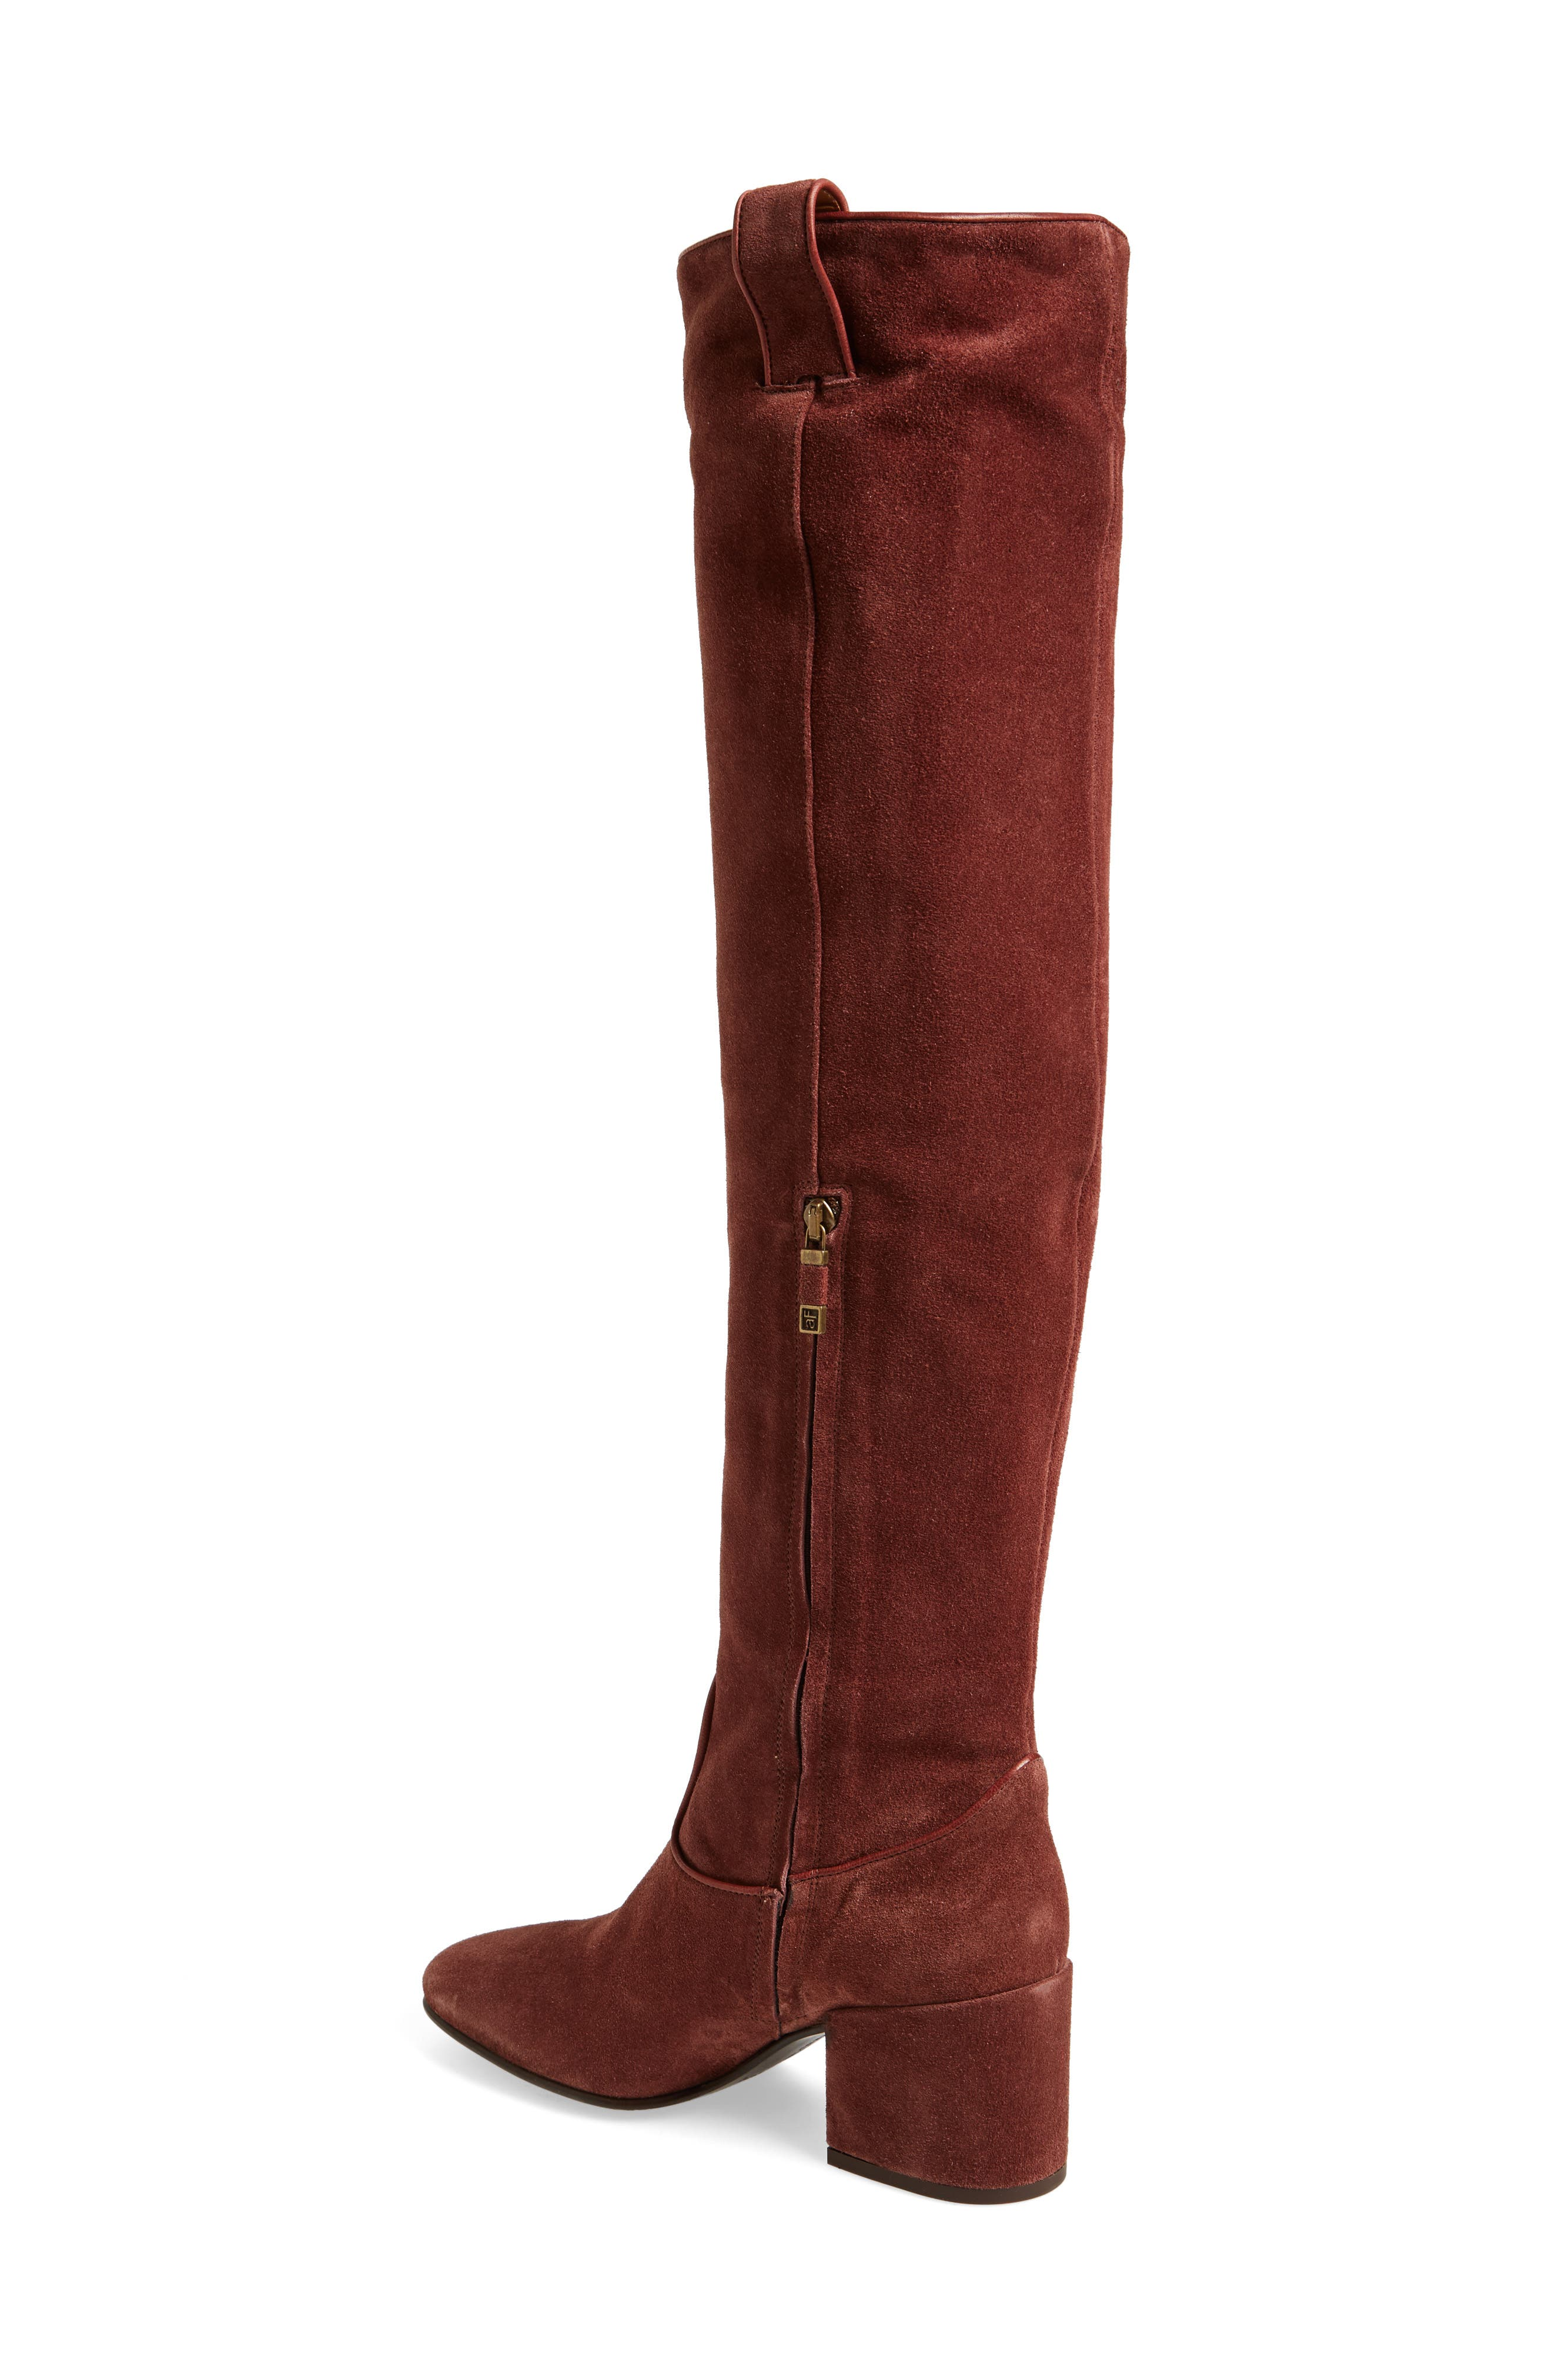 Delia Over the Knee Boot,                             Alternate thumbnail 2, color,                             930